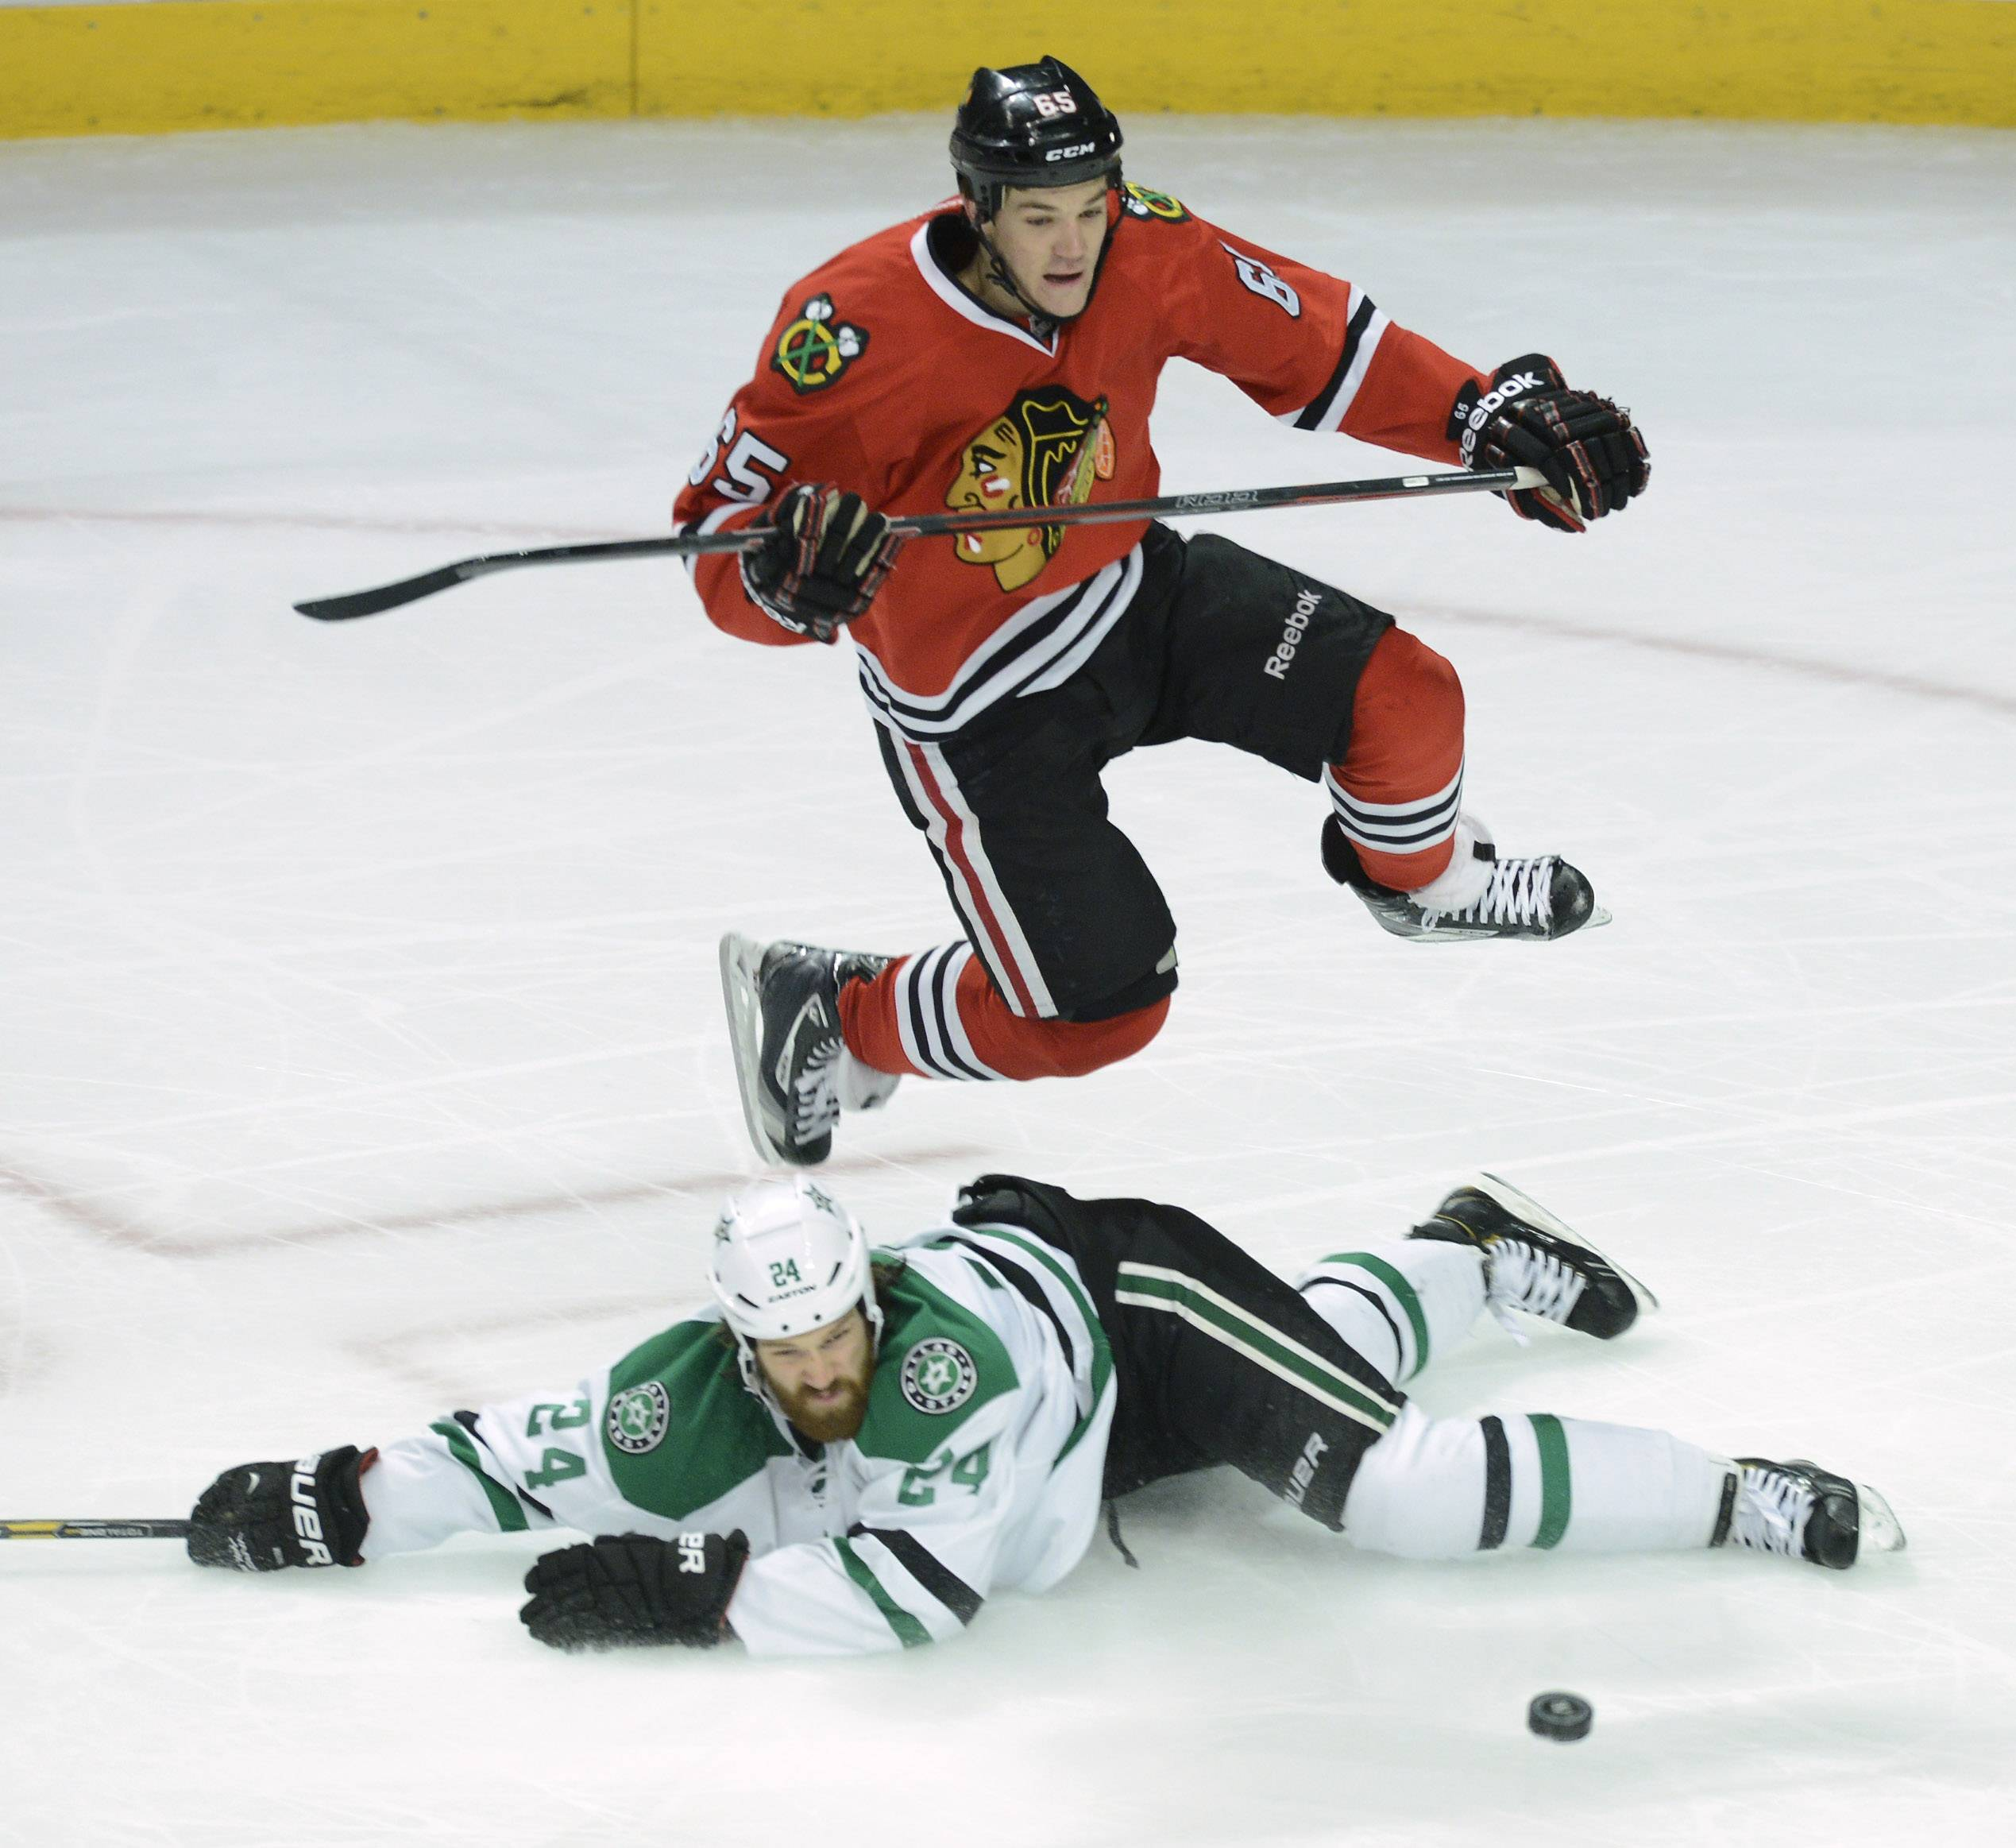 Andrew Shaw, whose status is day to day because of a lower-body injury, brings a unique attitude and skill set to the Hawks when he is on the ice.